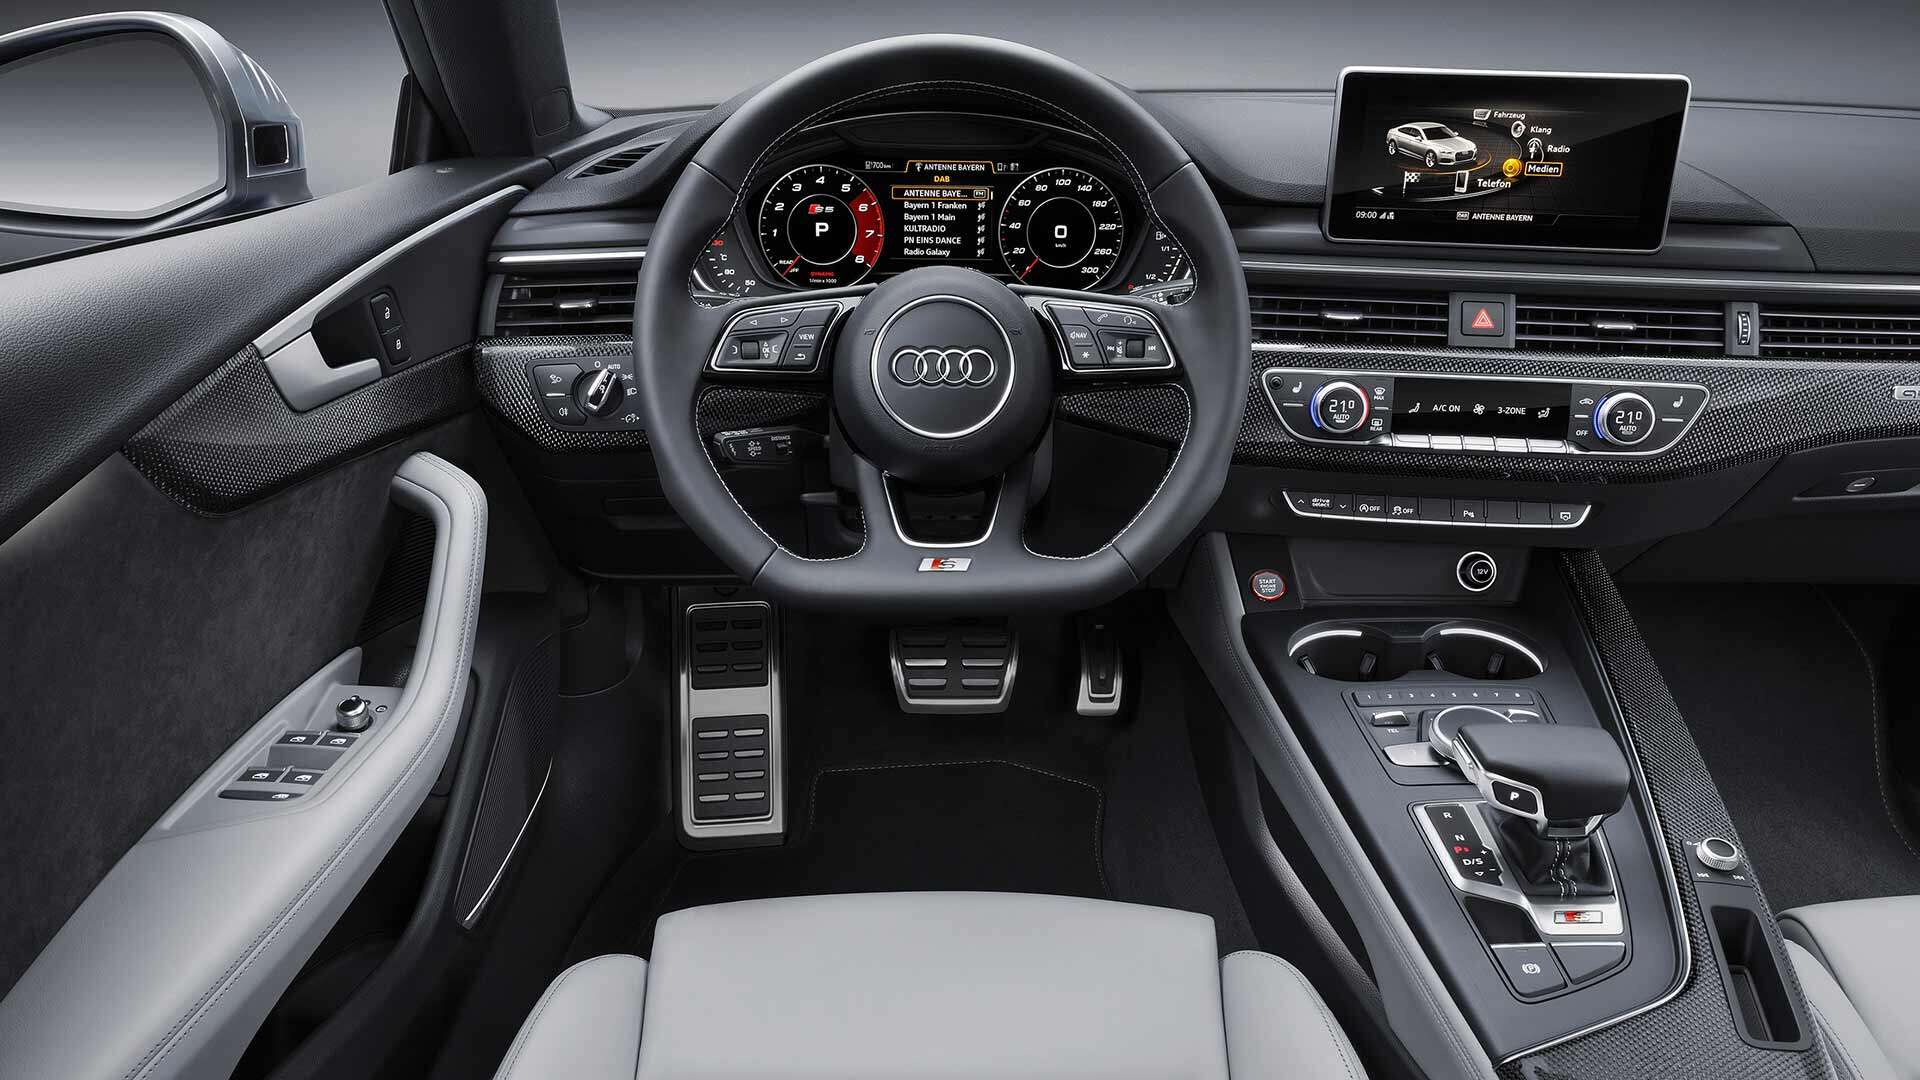 Audi Releases S Sportback Performance Specs And Pricing The Drive - Audi s5 specs